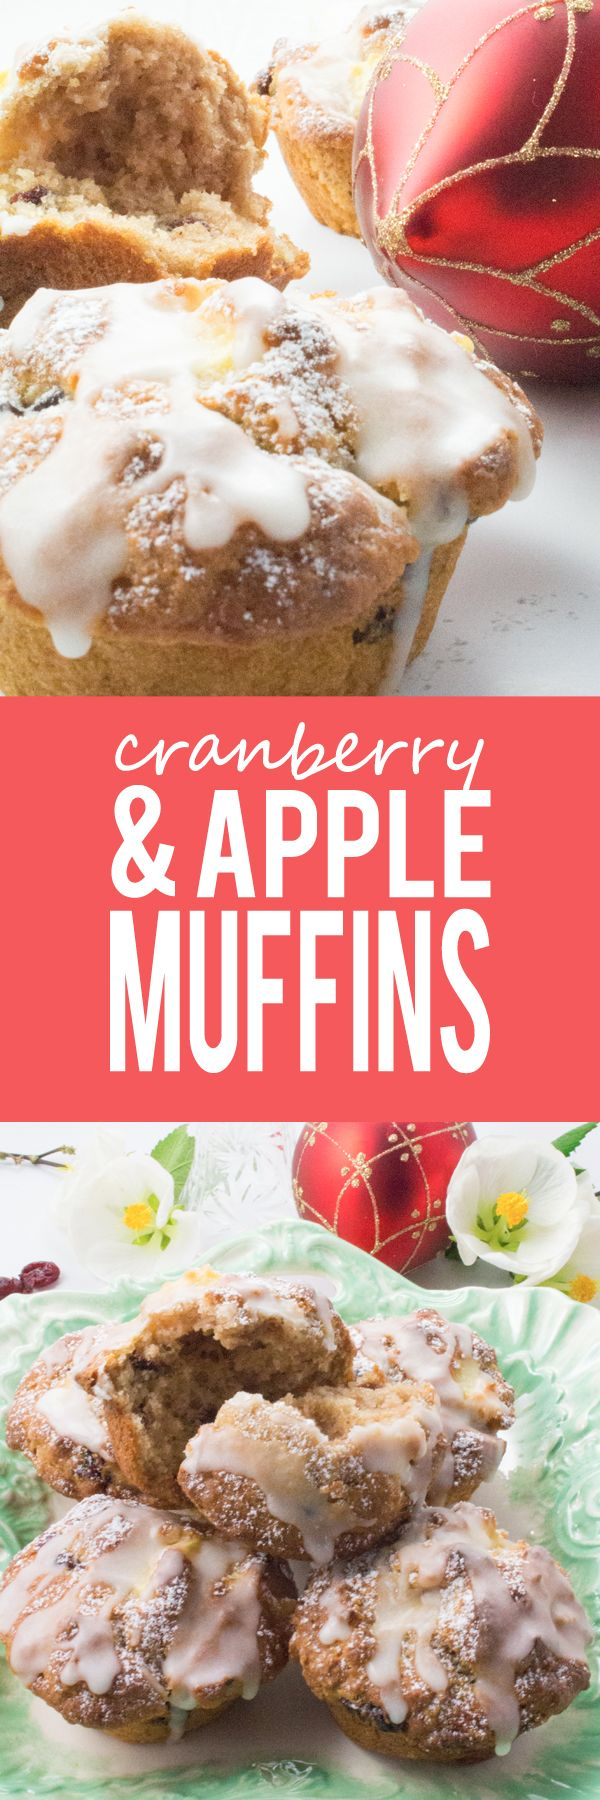 Cranberry and Apple Muffins - Packed full of apple chunks and bursting with dried cranberries in every bite, you are going to love these healthy Christmas flavored muffins! SOOOO GOOD!!